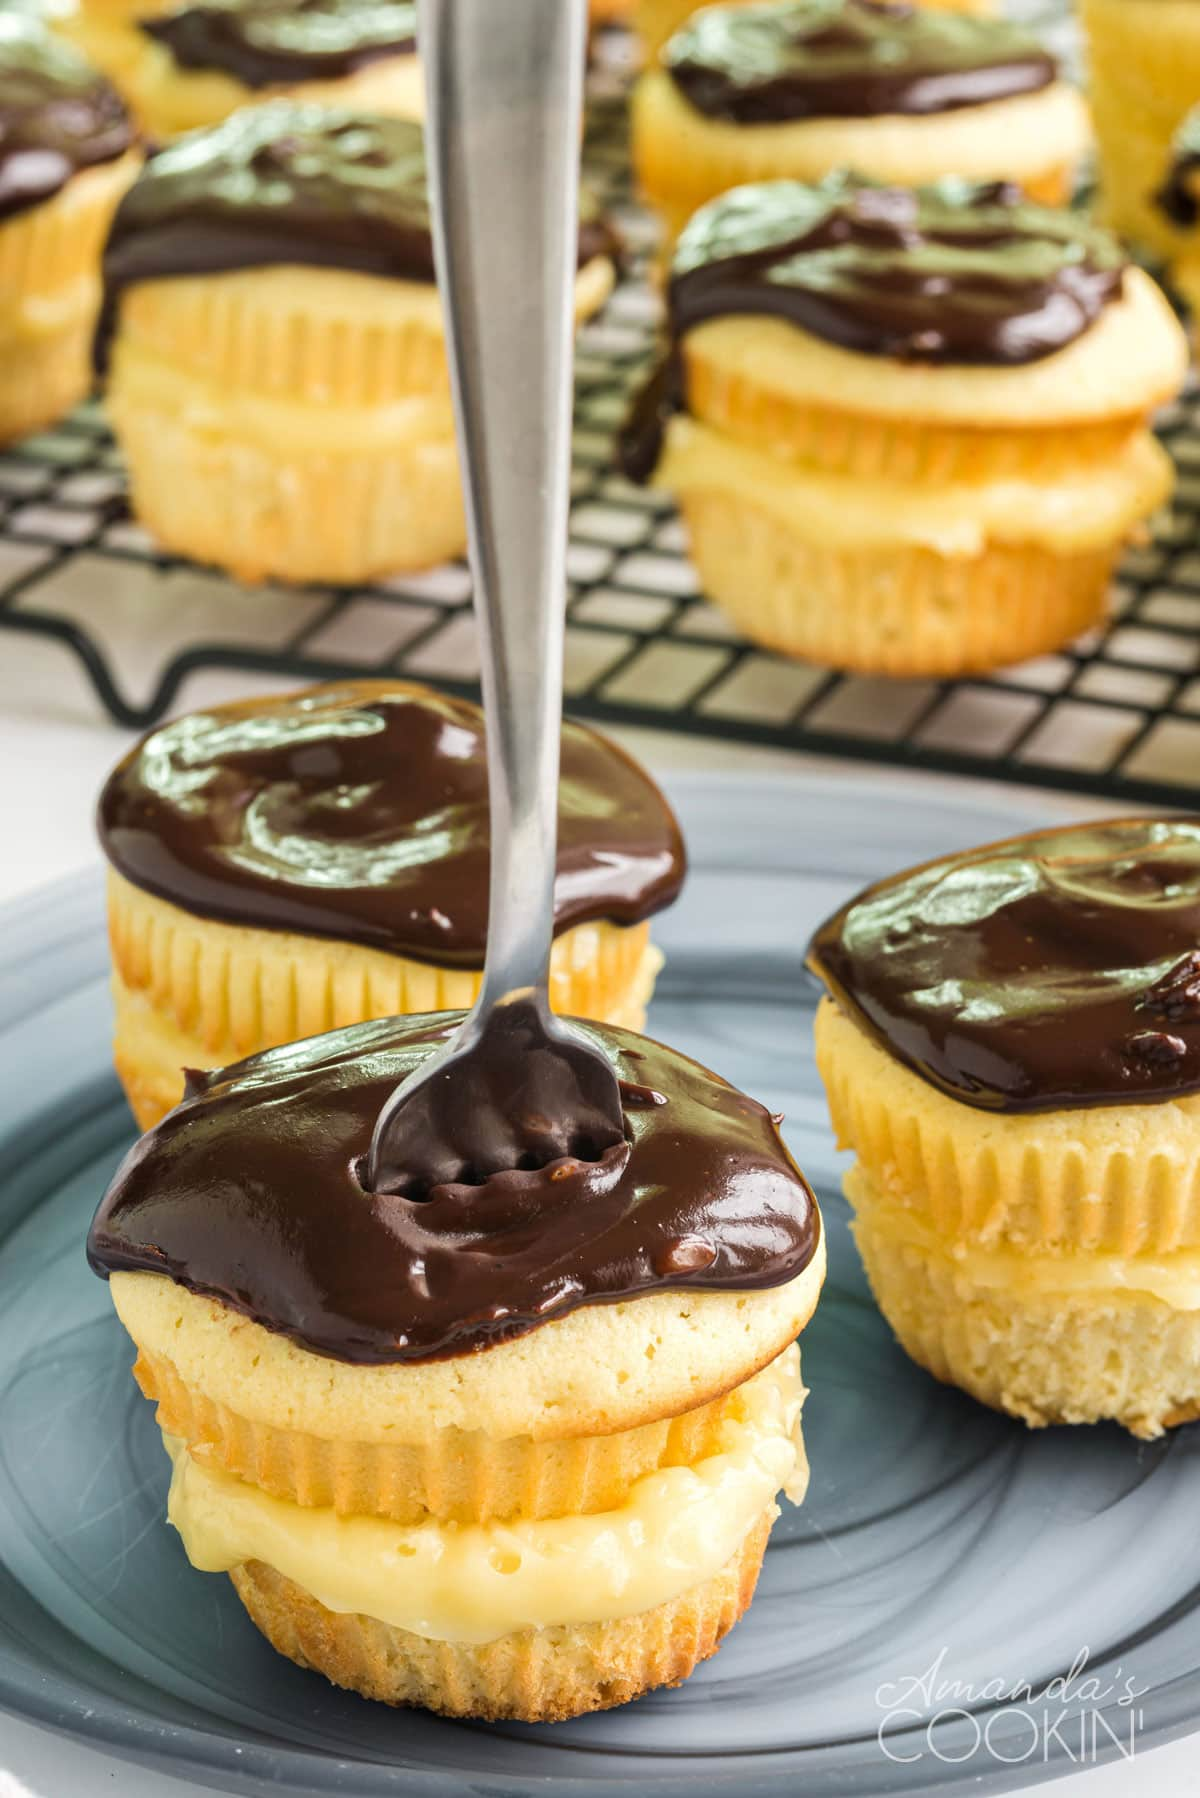 boston cream cupcake with a fork standing in the top of it